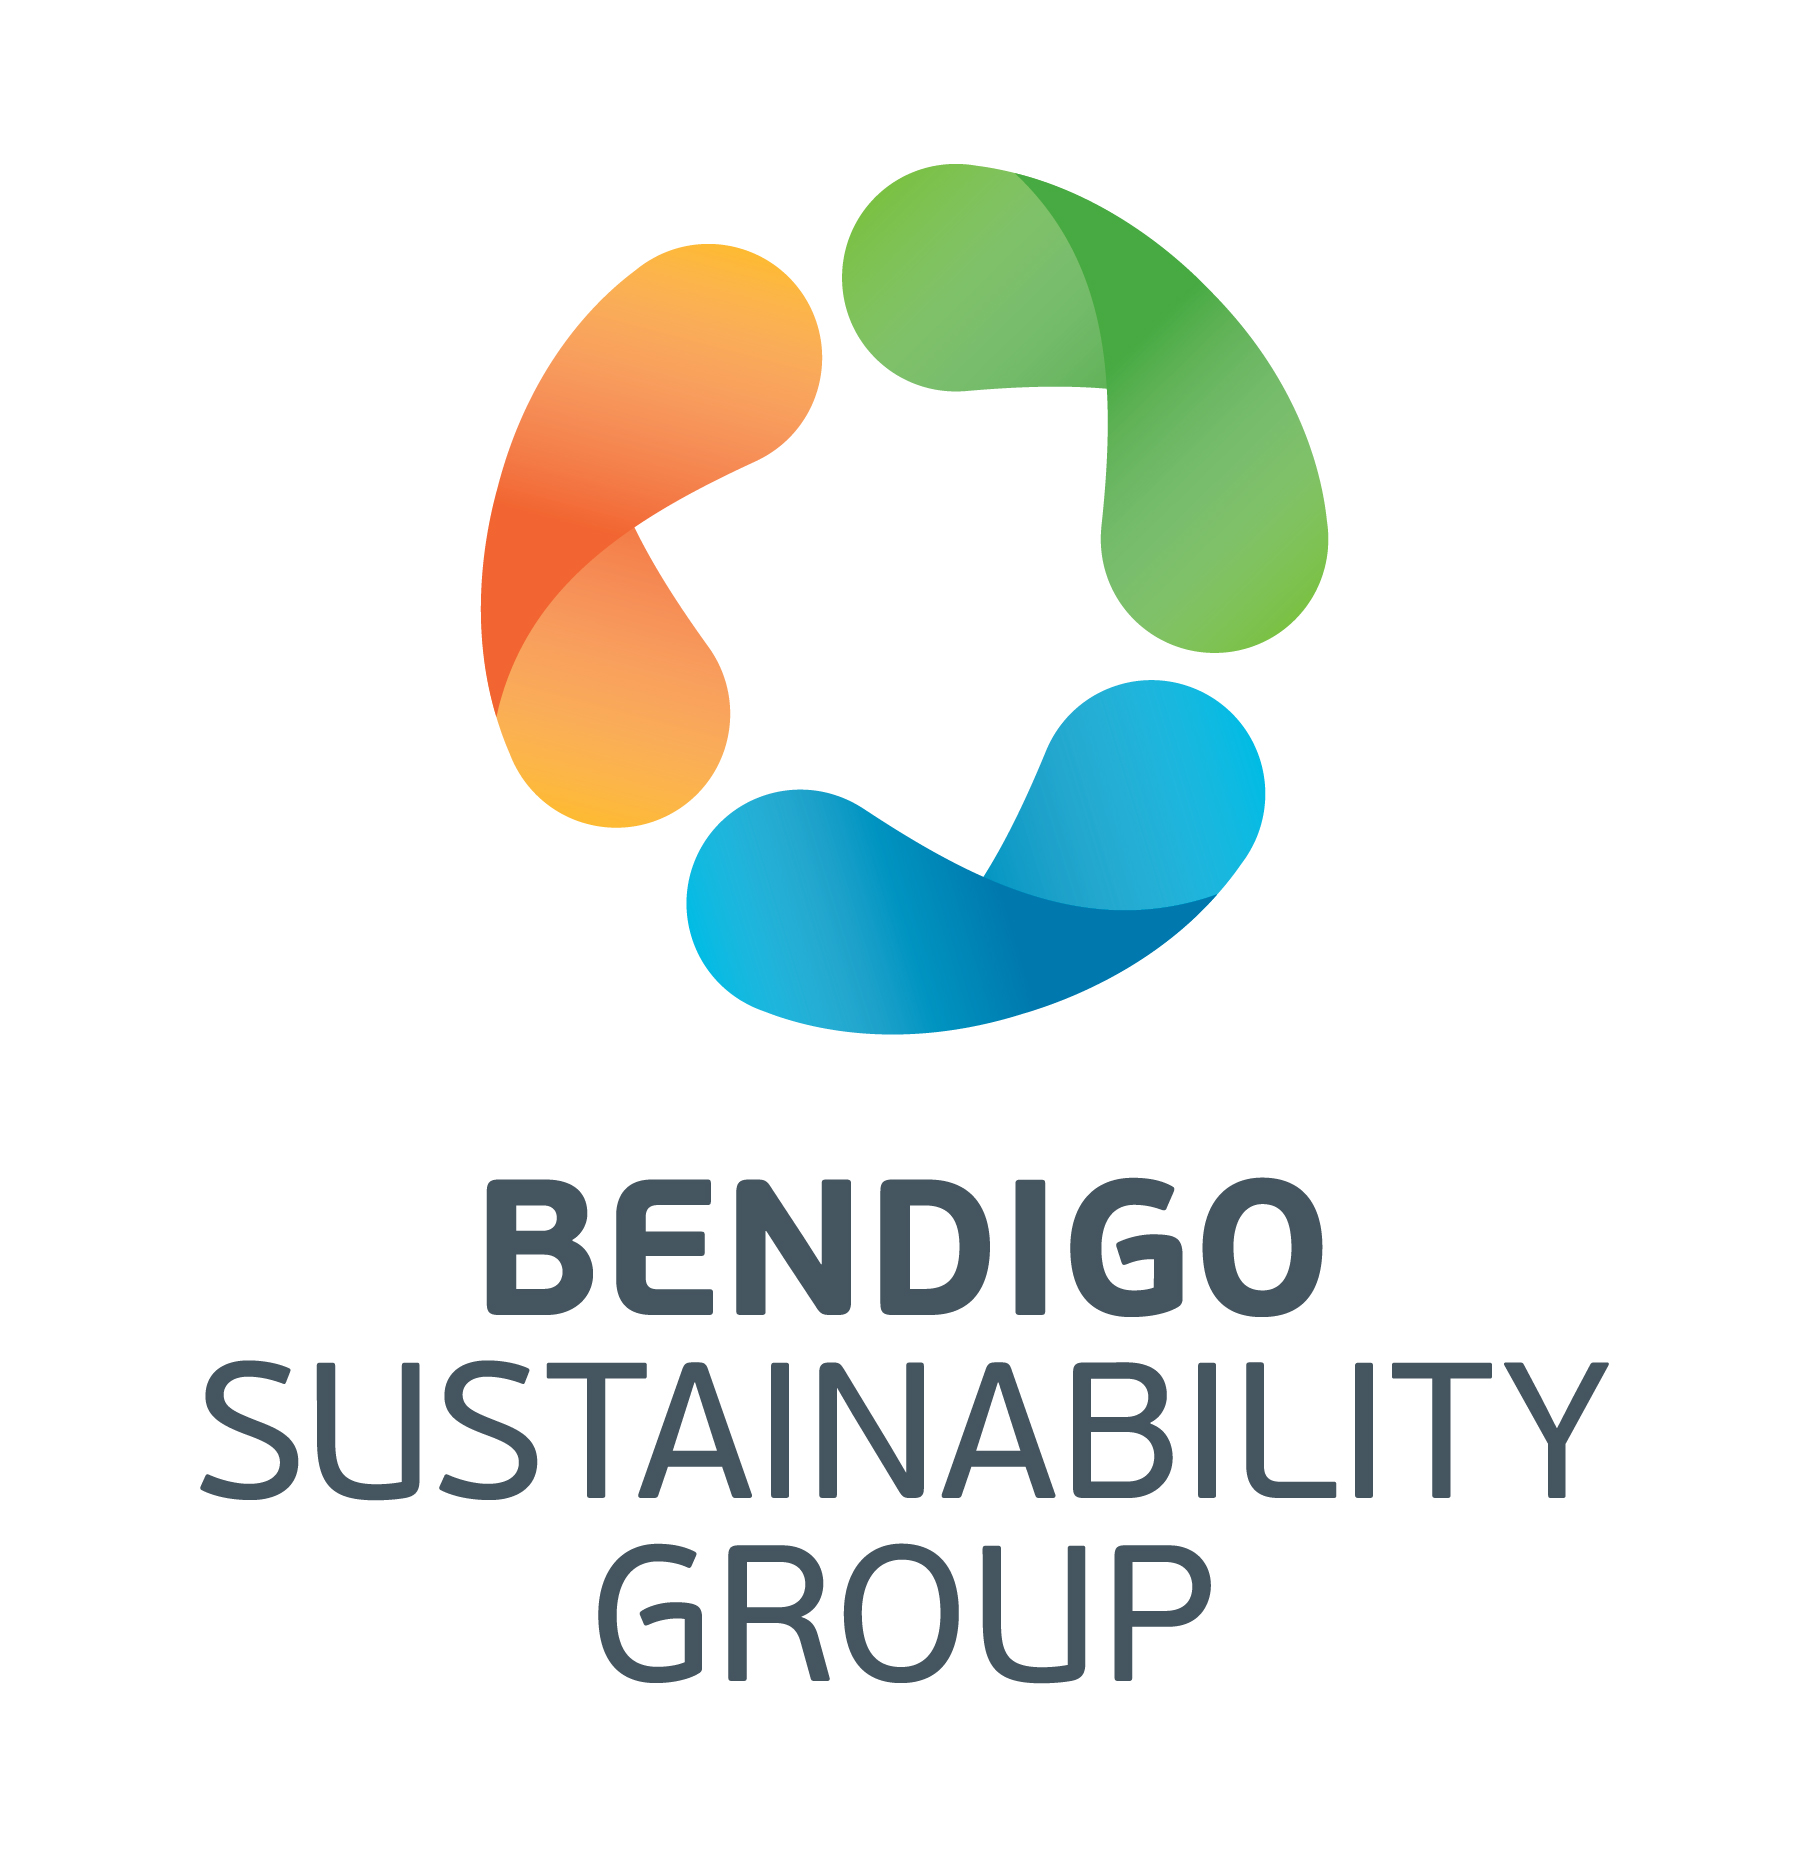 Bendigo_Sustainability_Group_Logo_-_Vertical_Lockup.jpg